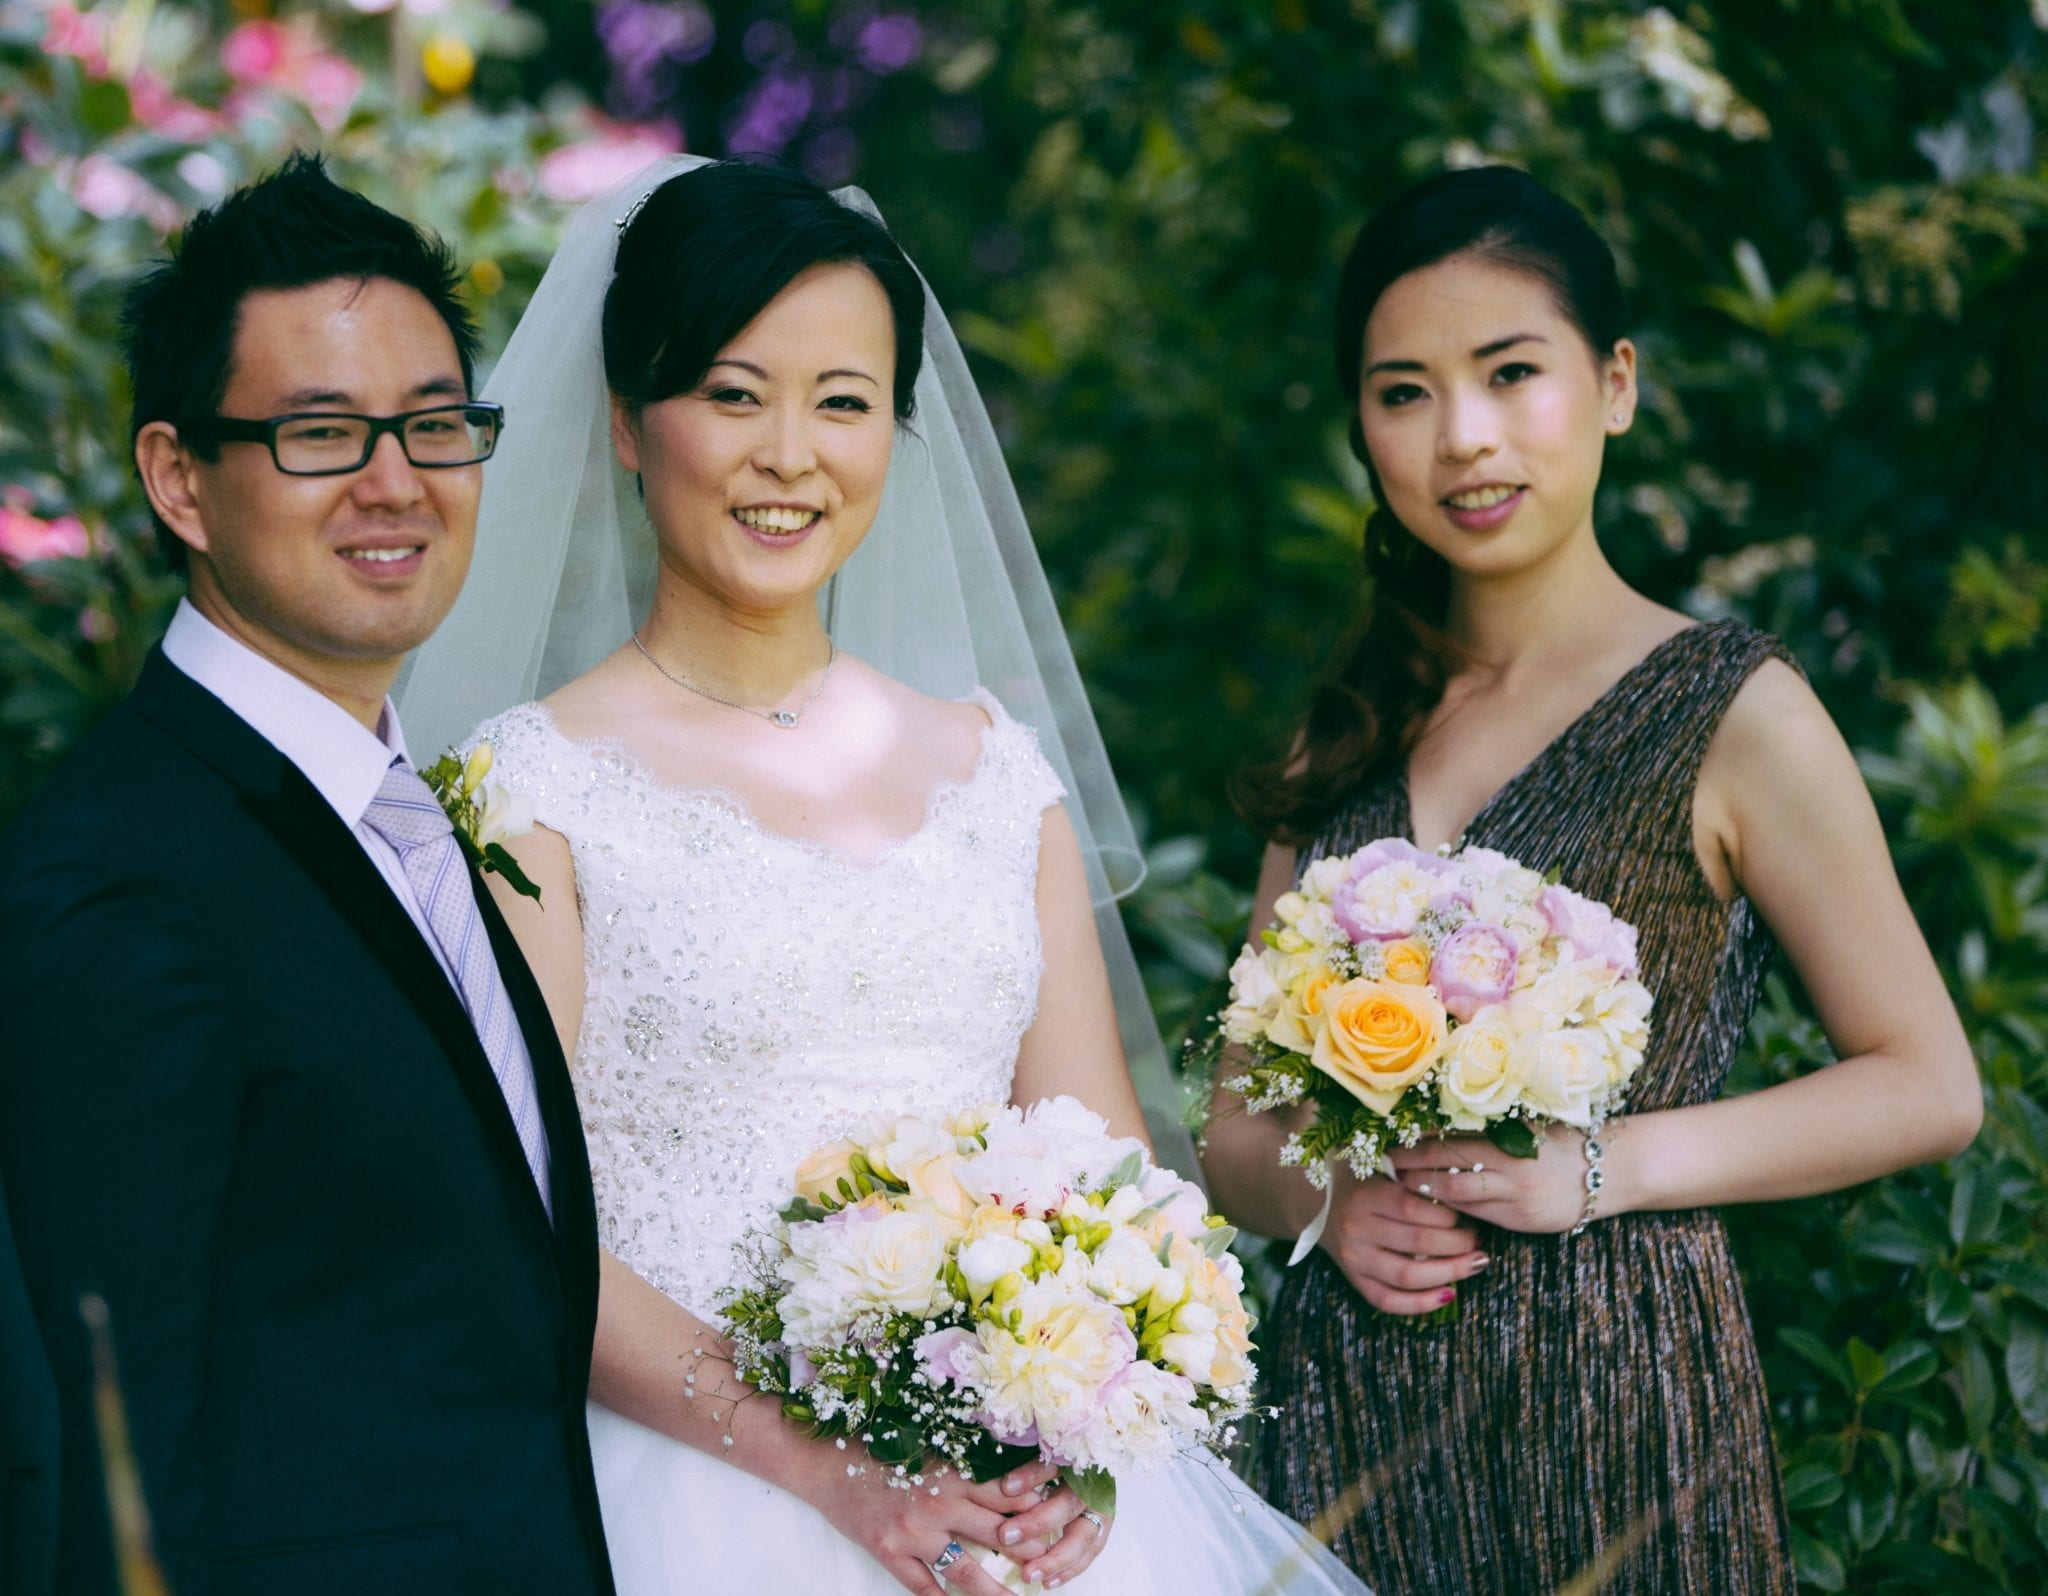 Kim Chan Events | Chinese Wedding -bouquets of peonies, roses, freesias and Gyp in pastel colours